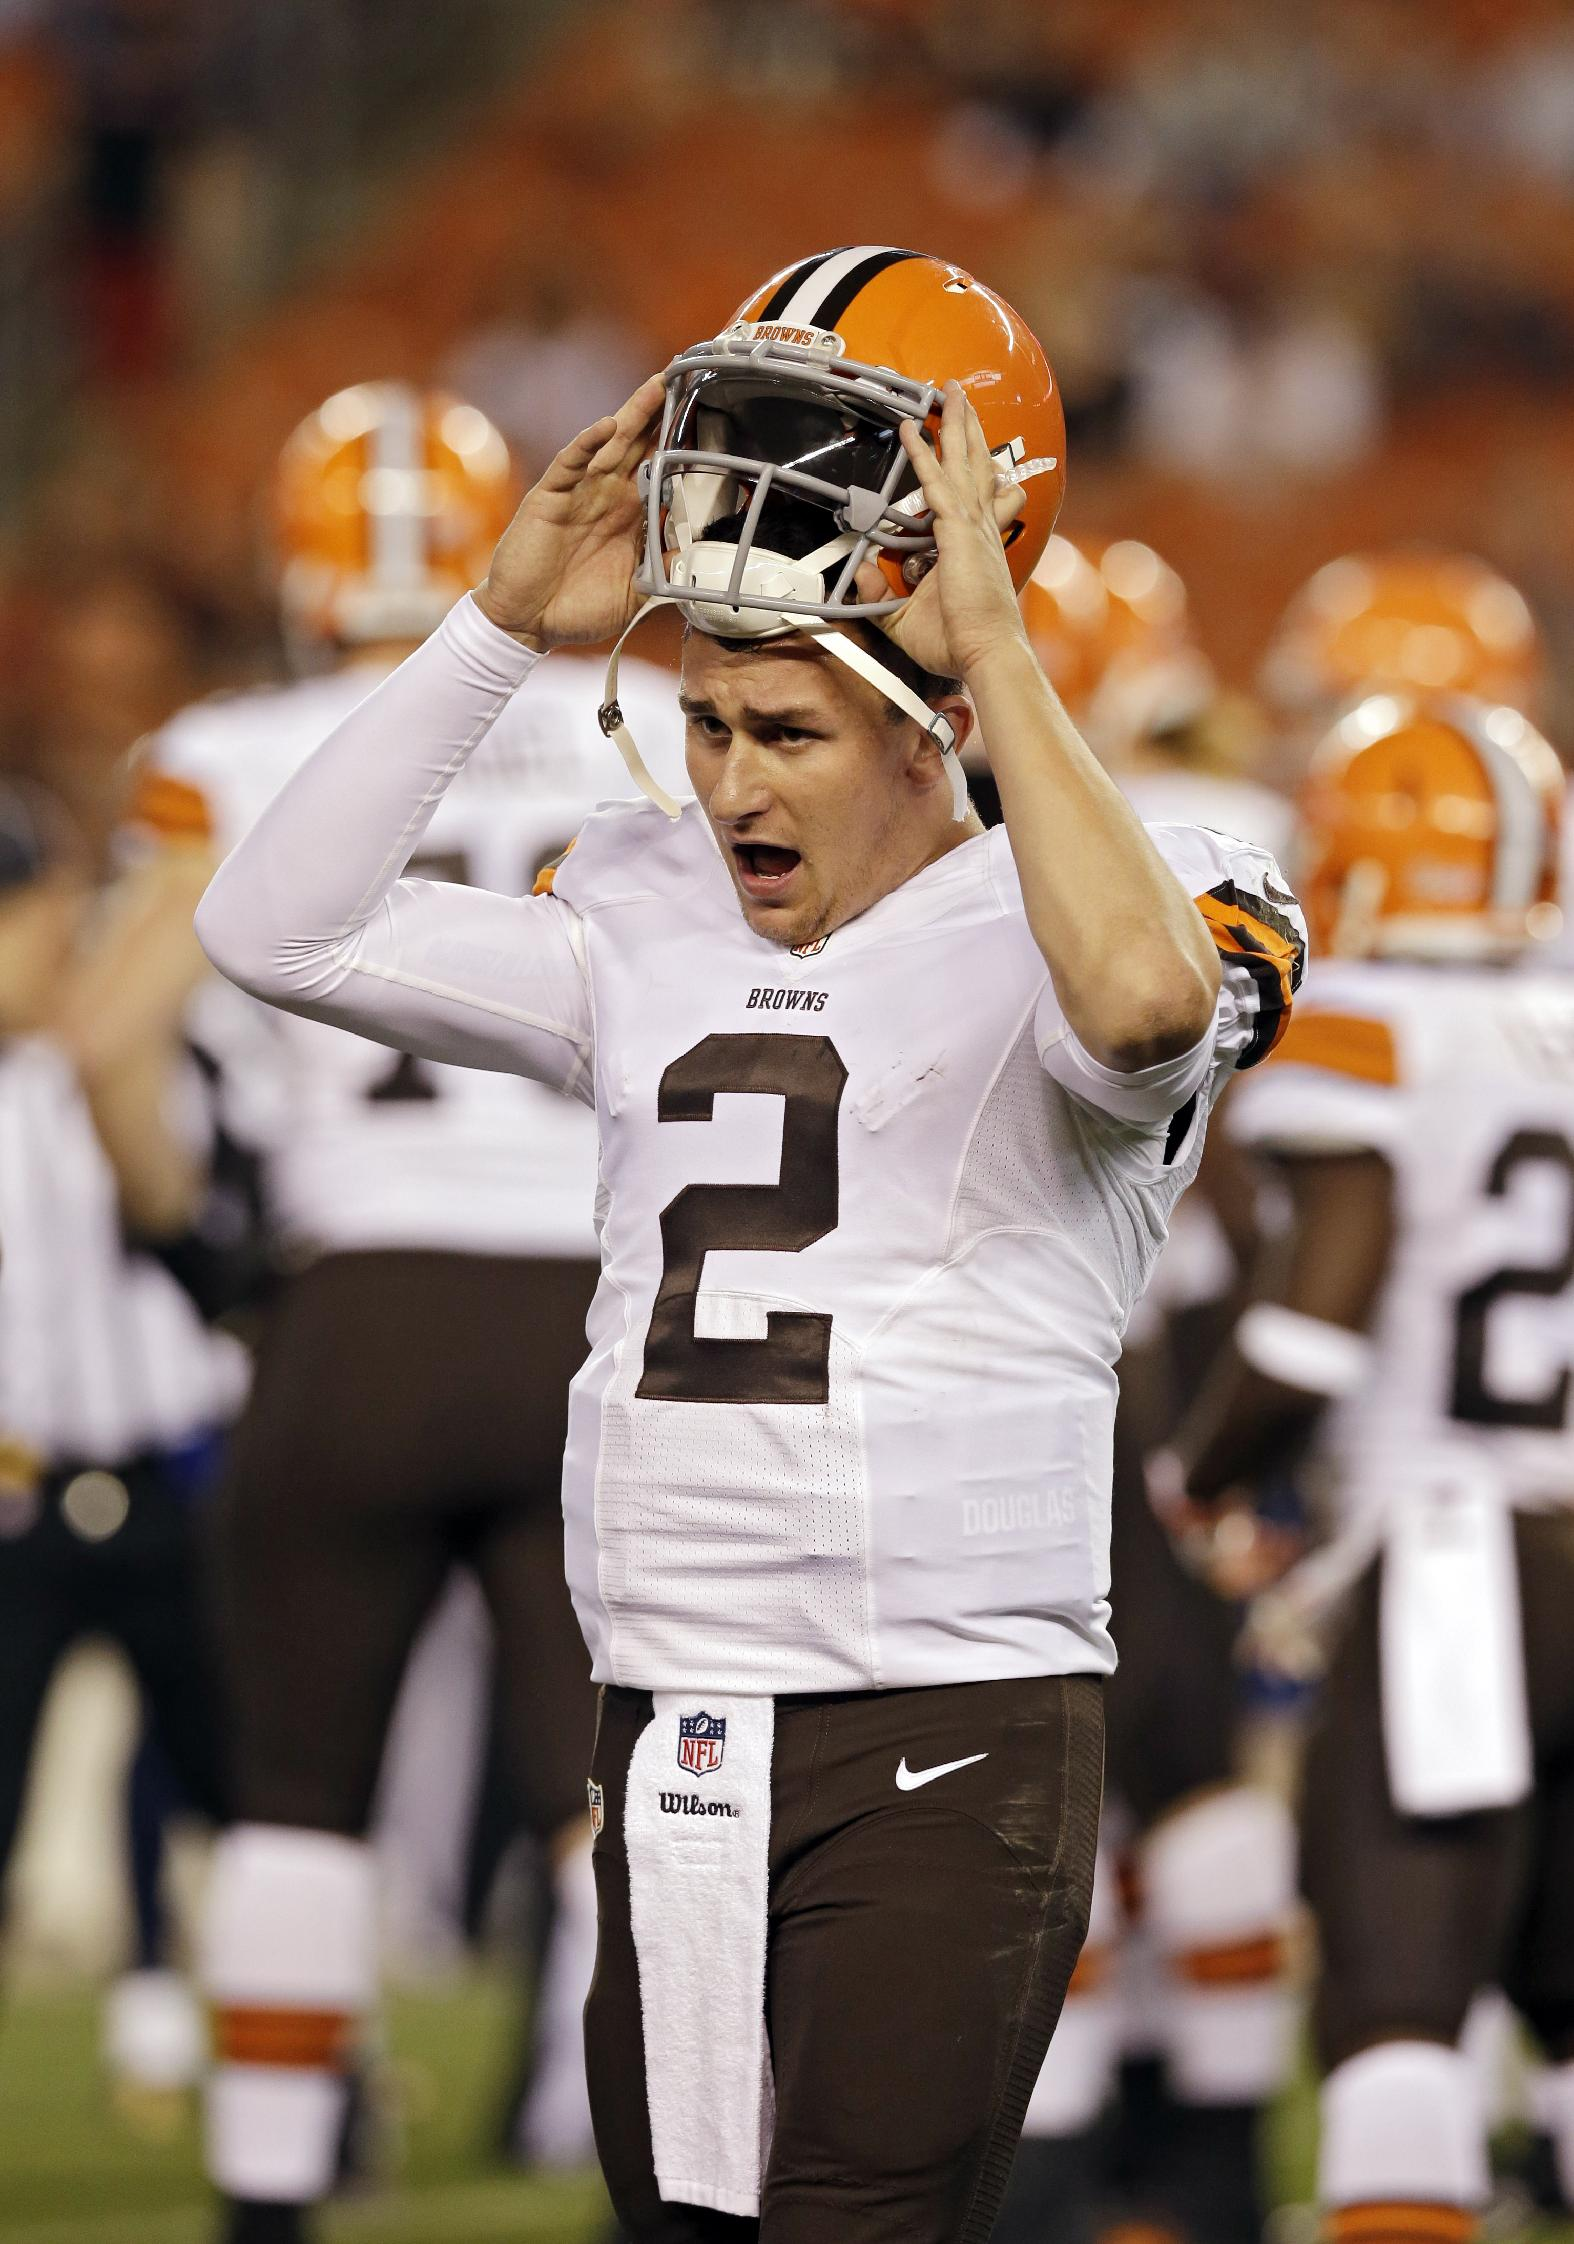 In this Aug. 23, 2014, photo, Cleveland Browns backup quarterback Johnny Manziel comes to the sidelines during a preseason NFL football game against the St. Louis Rams in Cleveland. Starting quarterback Brian Hoyer didn't change the opinion of some who feel rookie Manziel should be starting